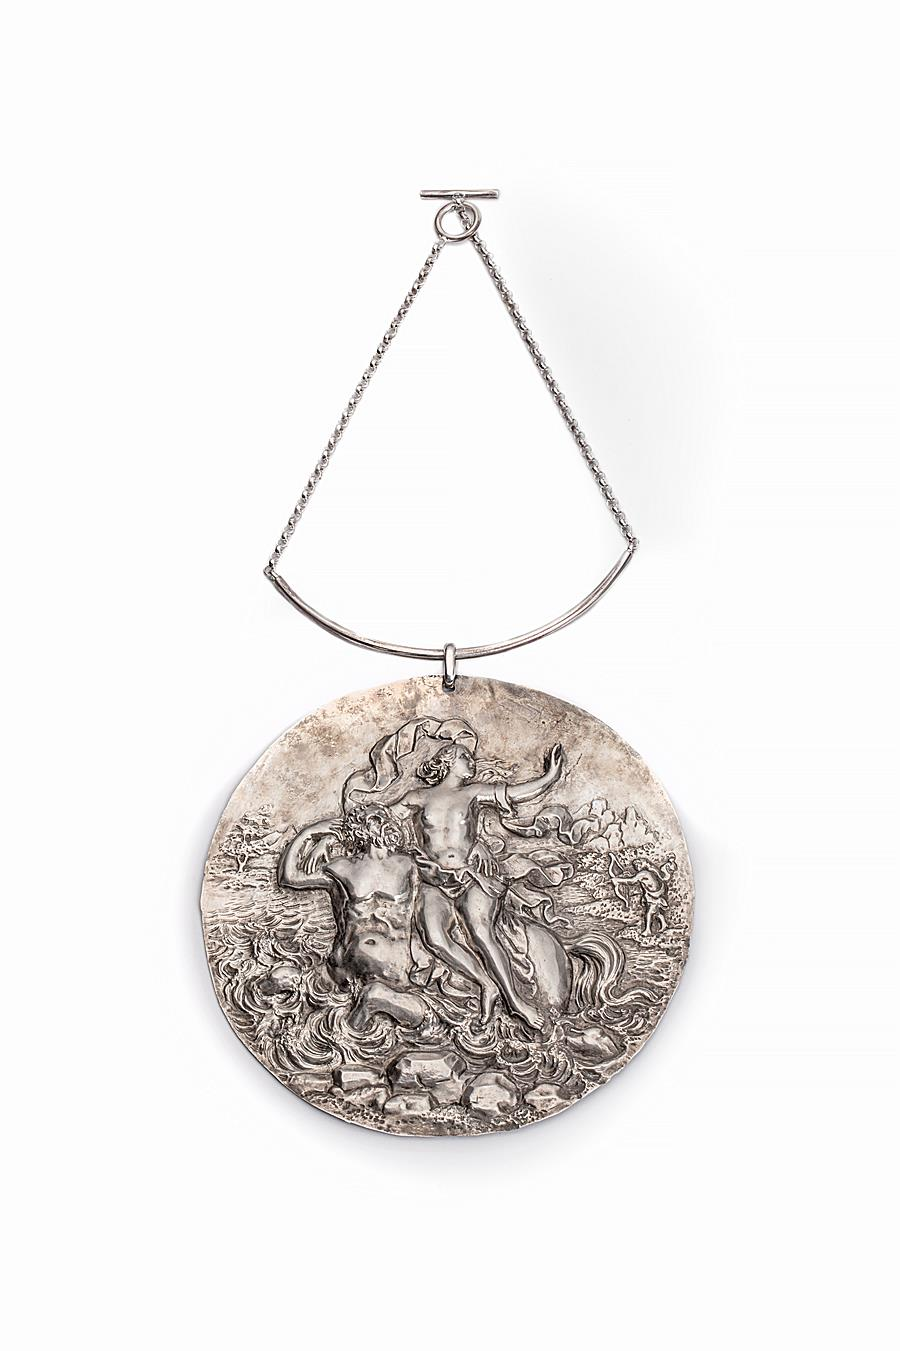 LARGE NECKLACE WITH A BAROQUE PLAQUE WITH  A MYTHOLOGICAL SCENE FROM THE METAMORPHOSES OF OVID